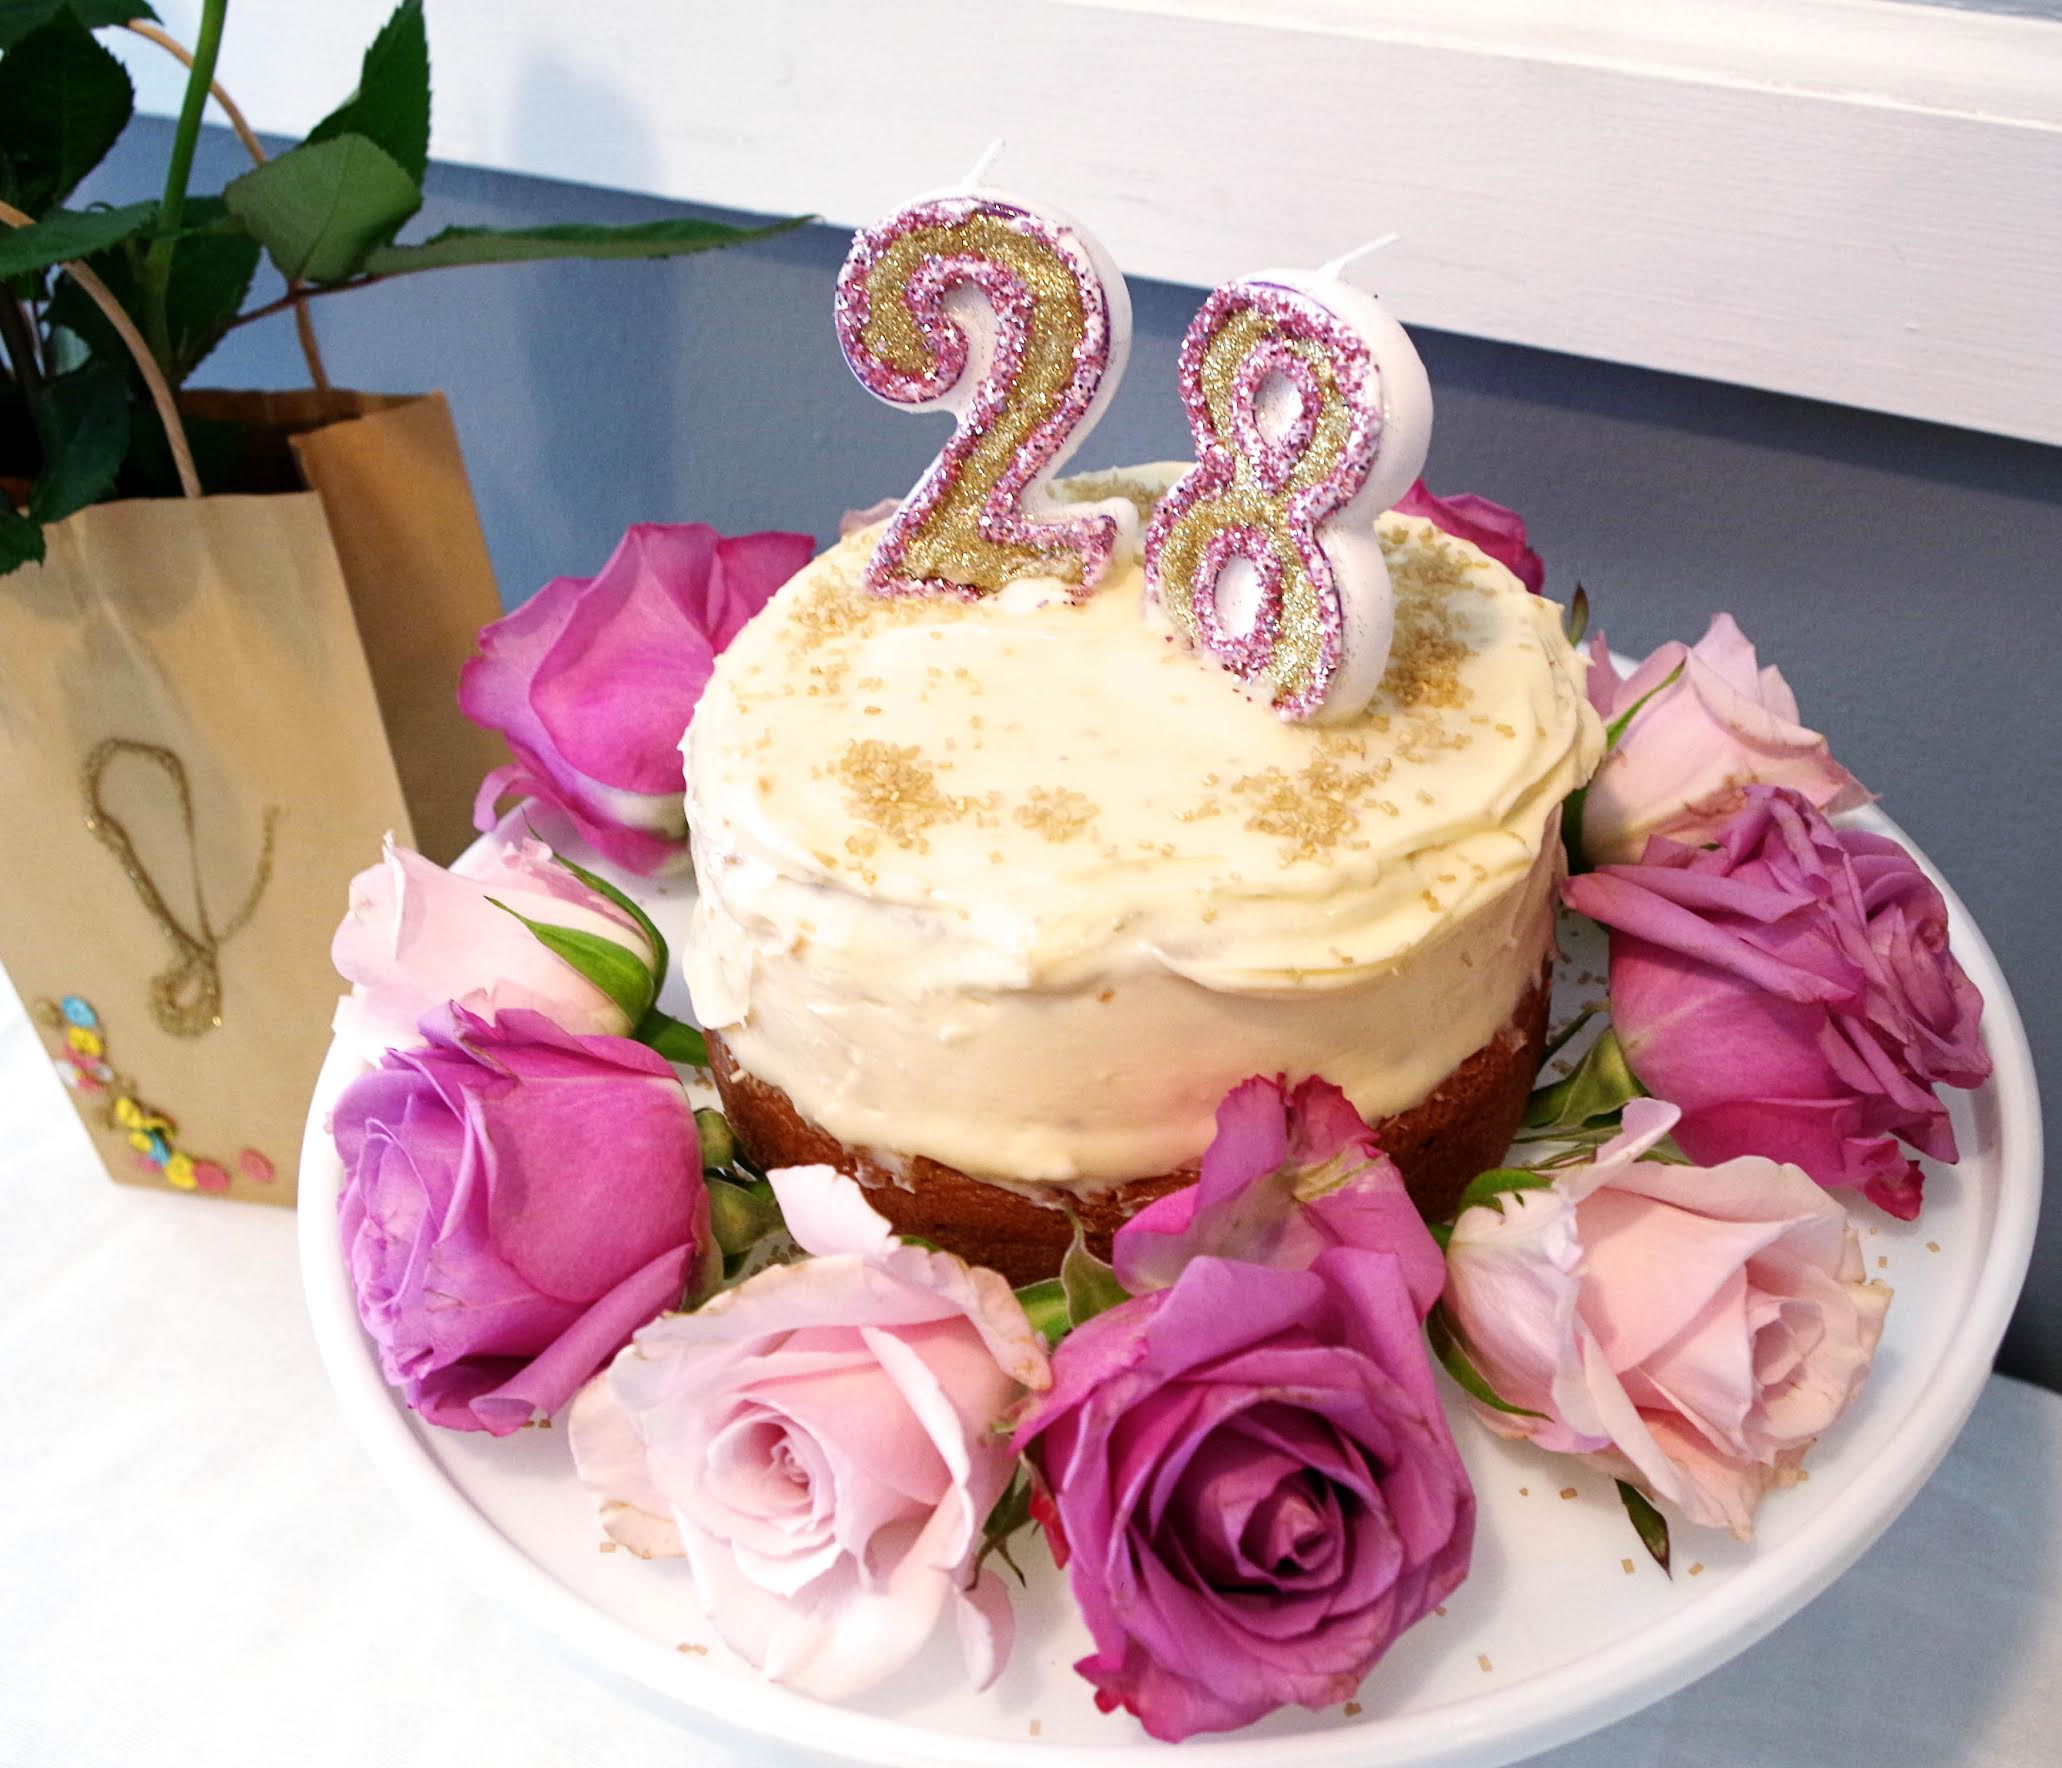 cake with roses, candles and frosting